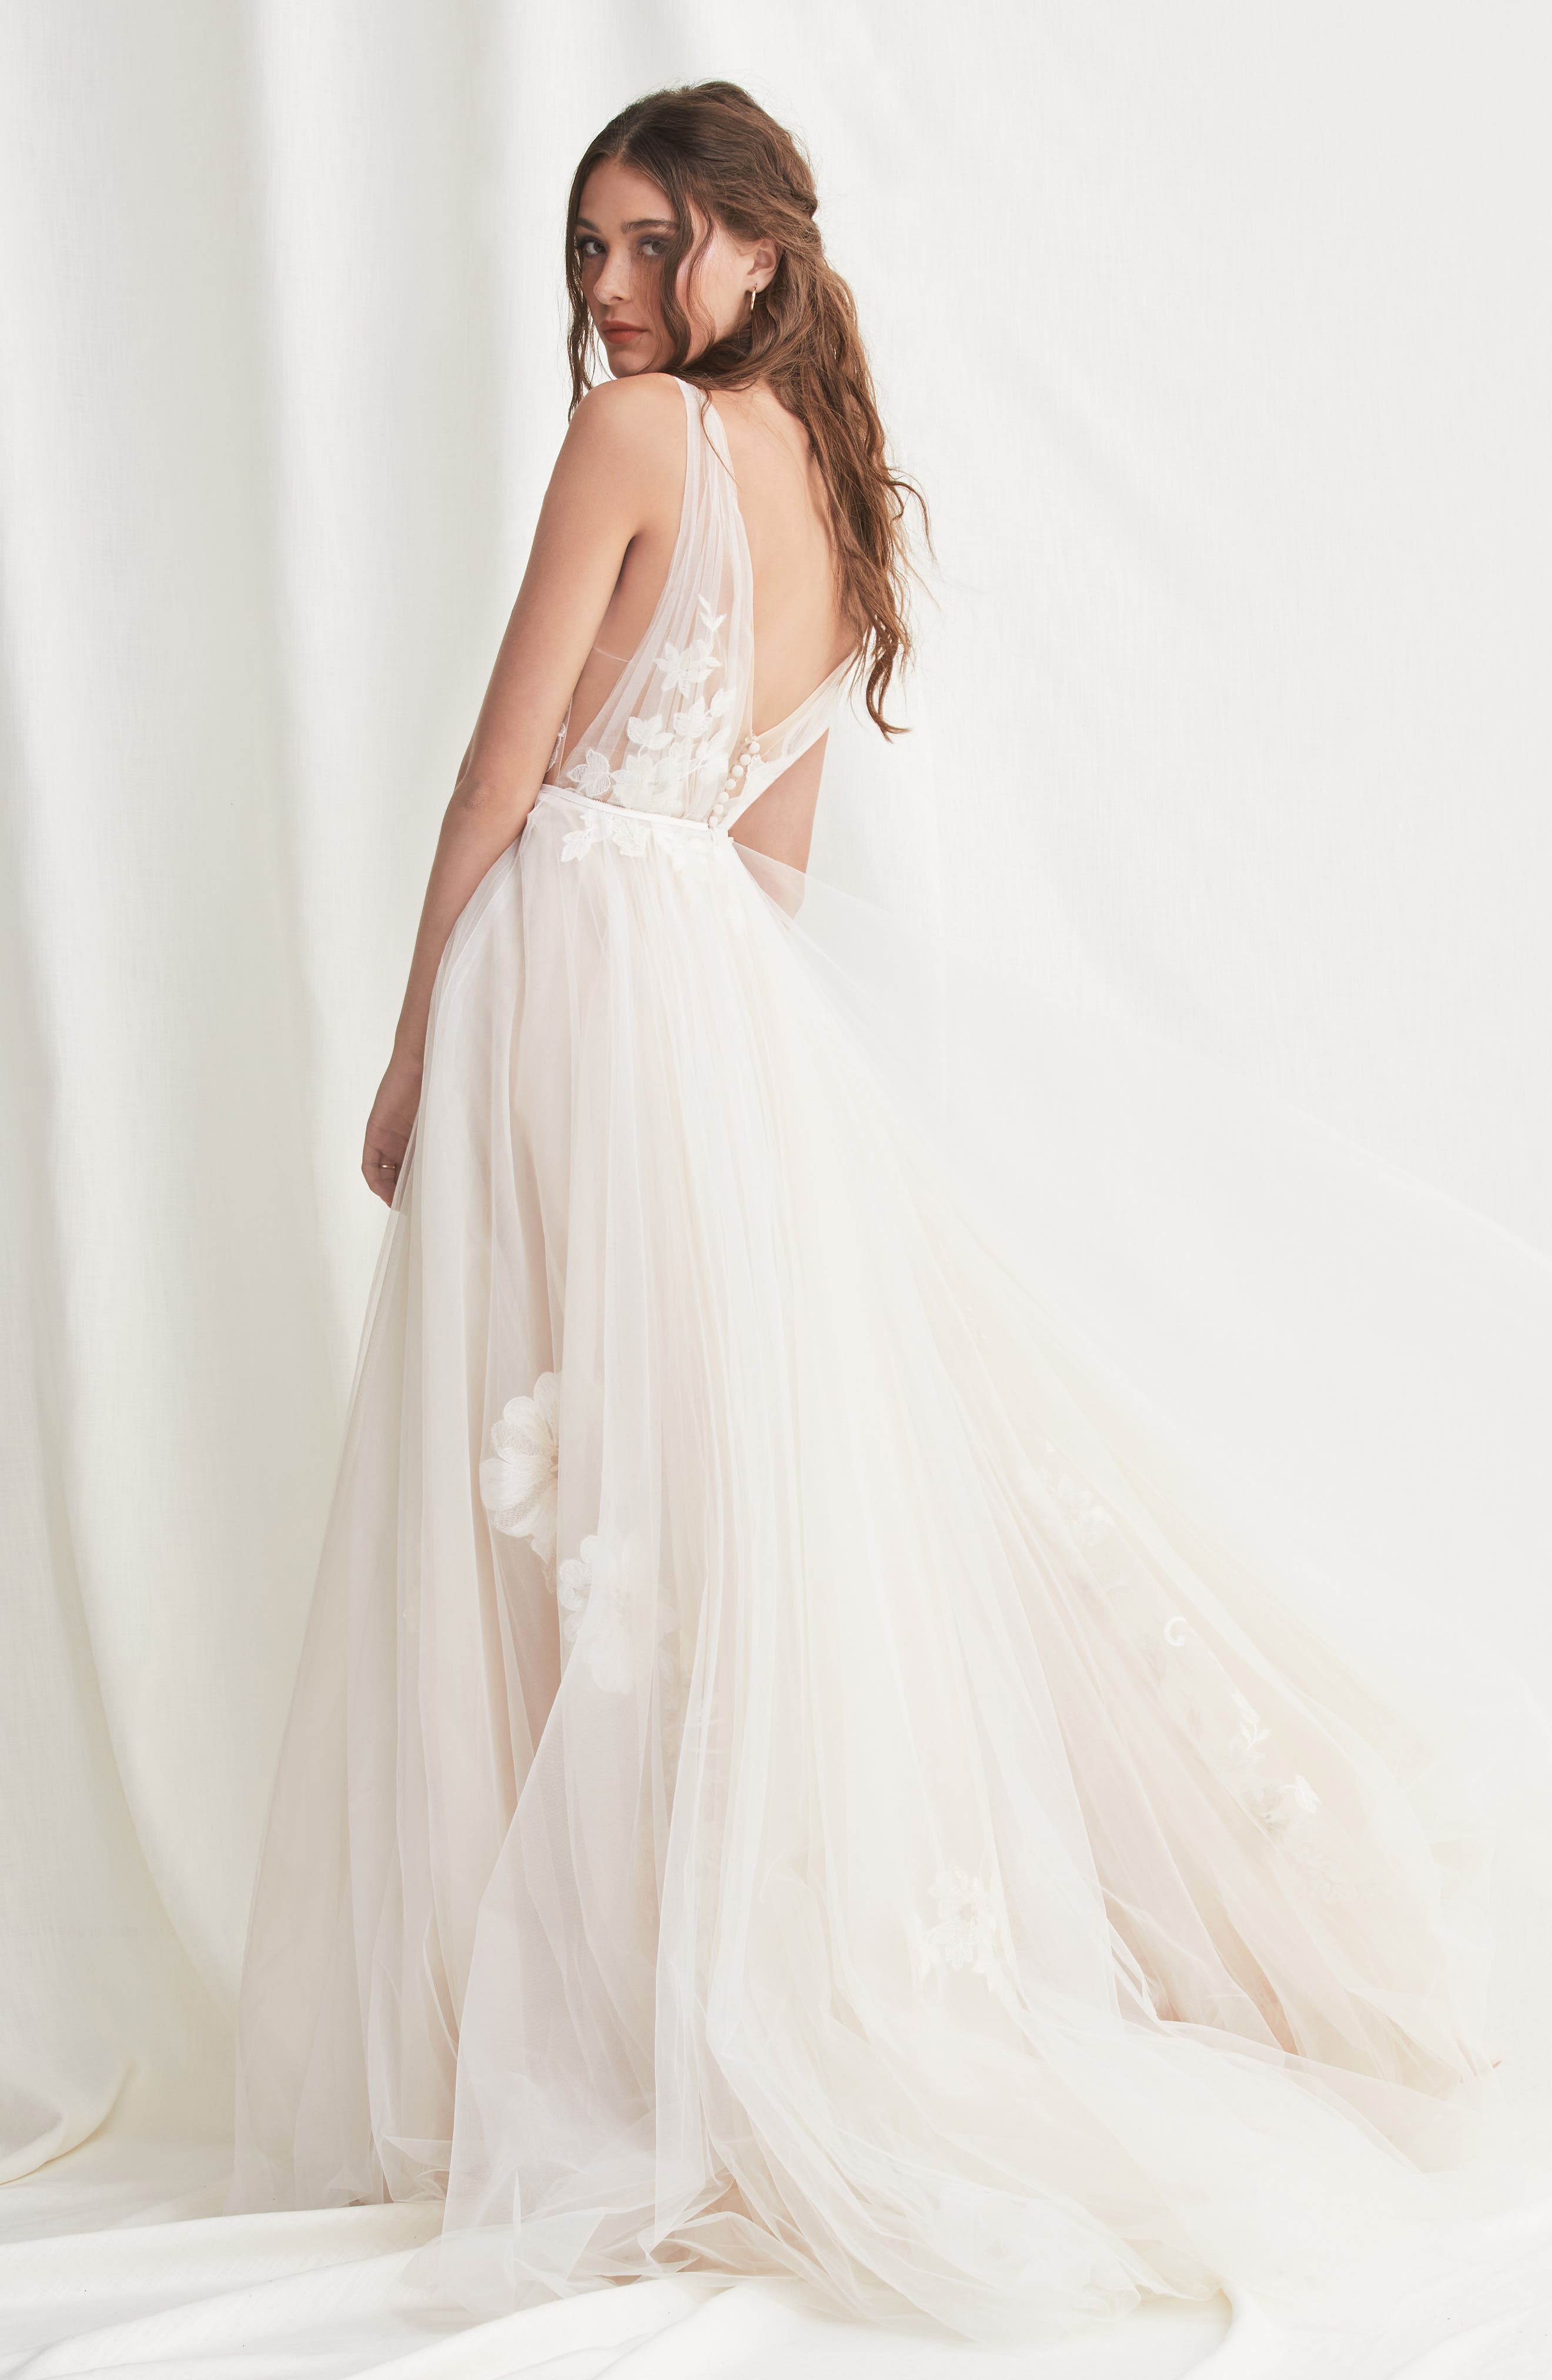 Lanie Floral Appliqué & Tulle A-Line Wedding Dress,                             Alternate thumbnail 2, color,                             900